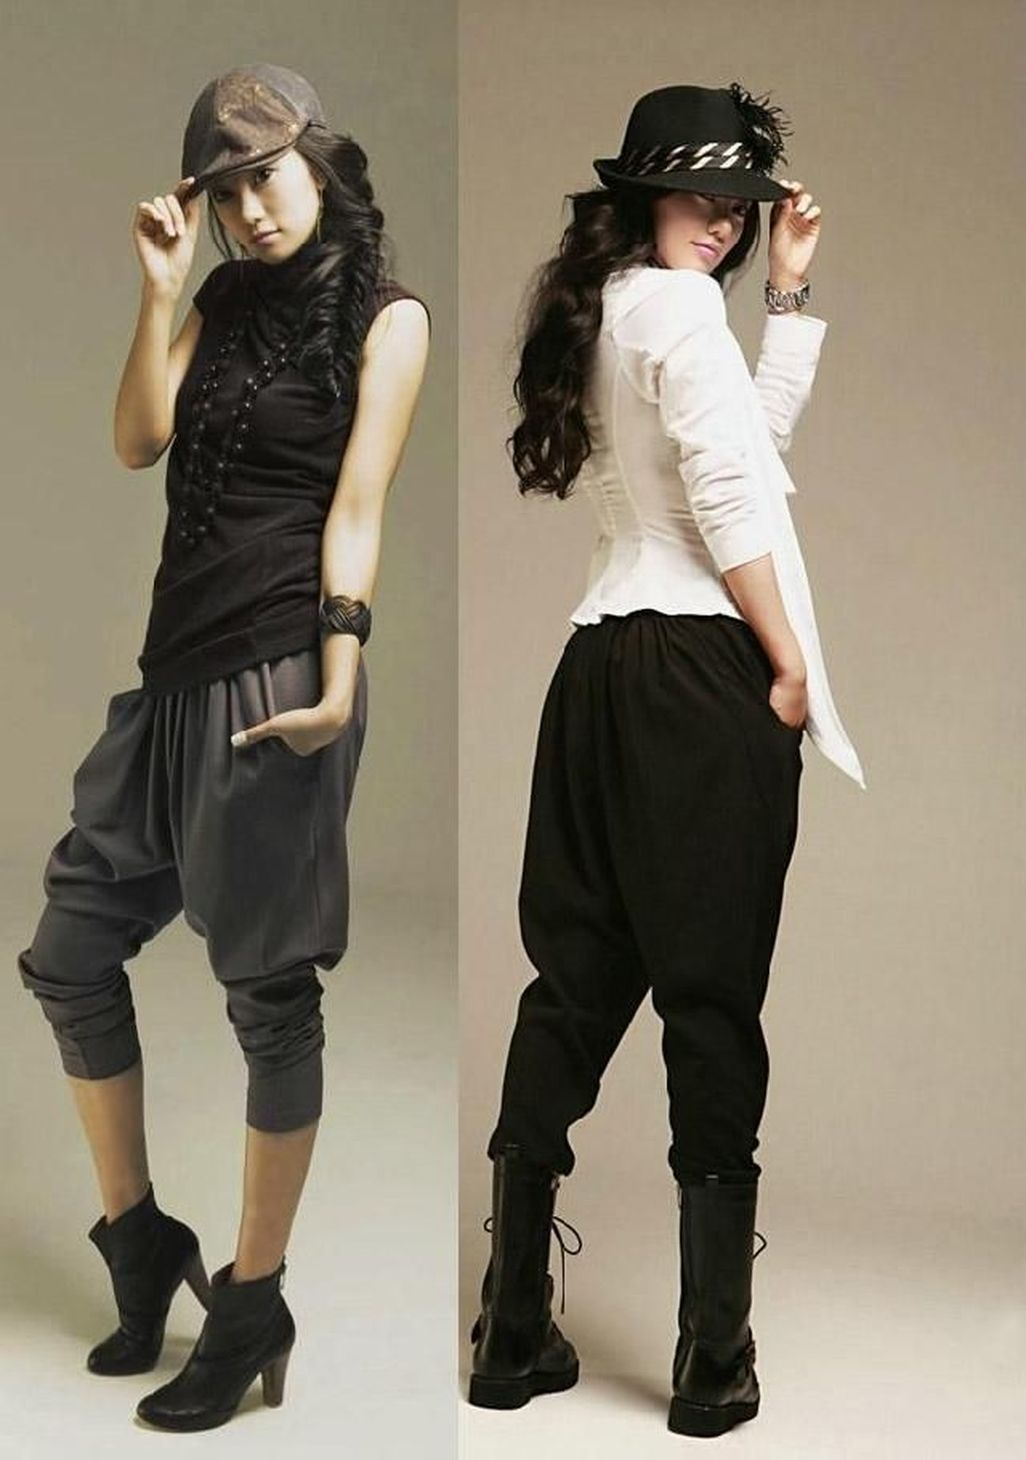 49 Fabulous Hip Hop Styles Clothing Ideas For Women  458a6415c2f7